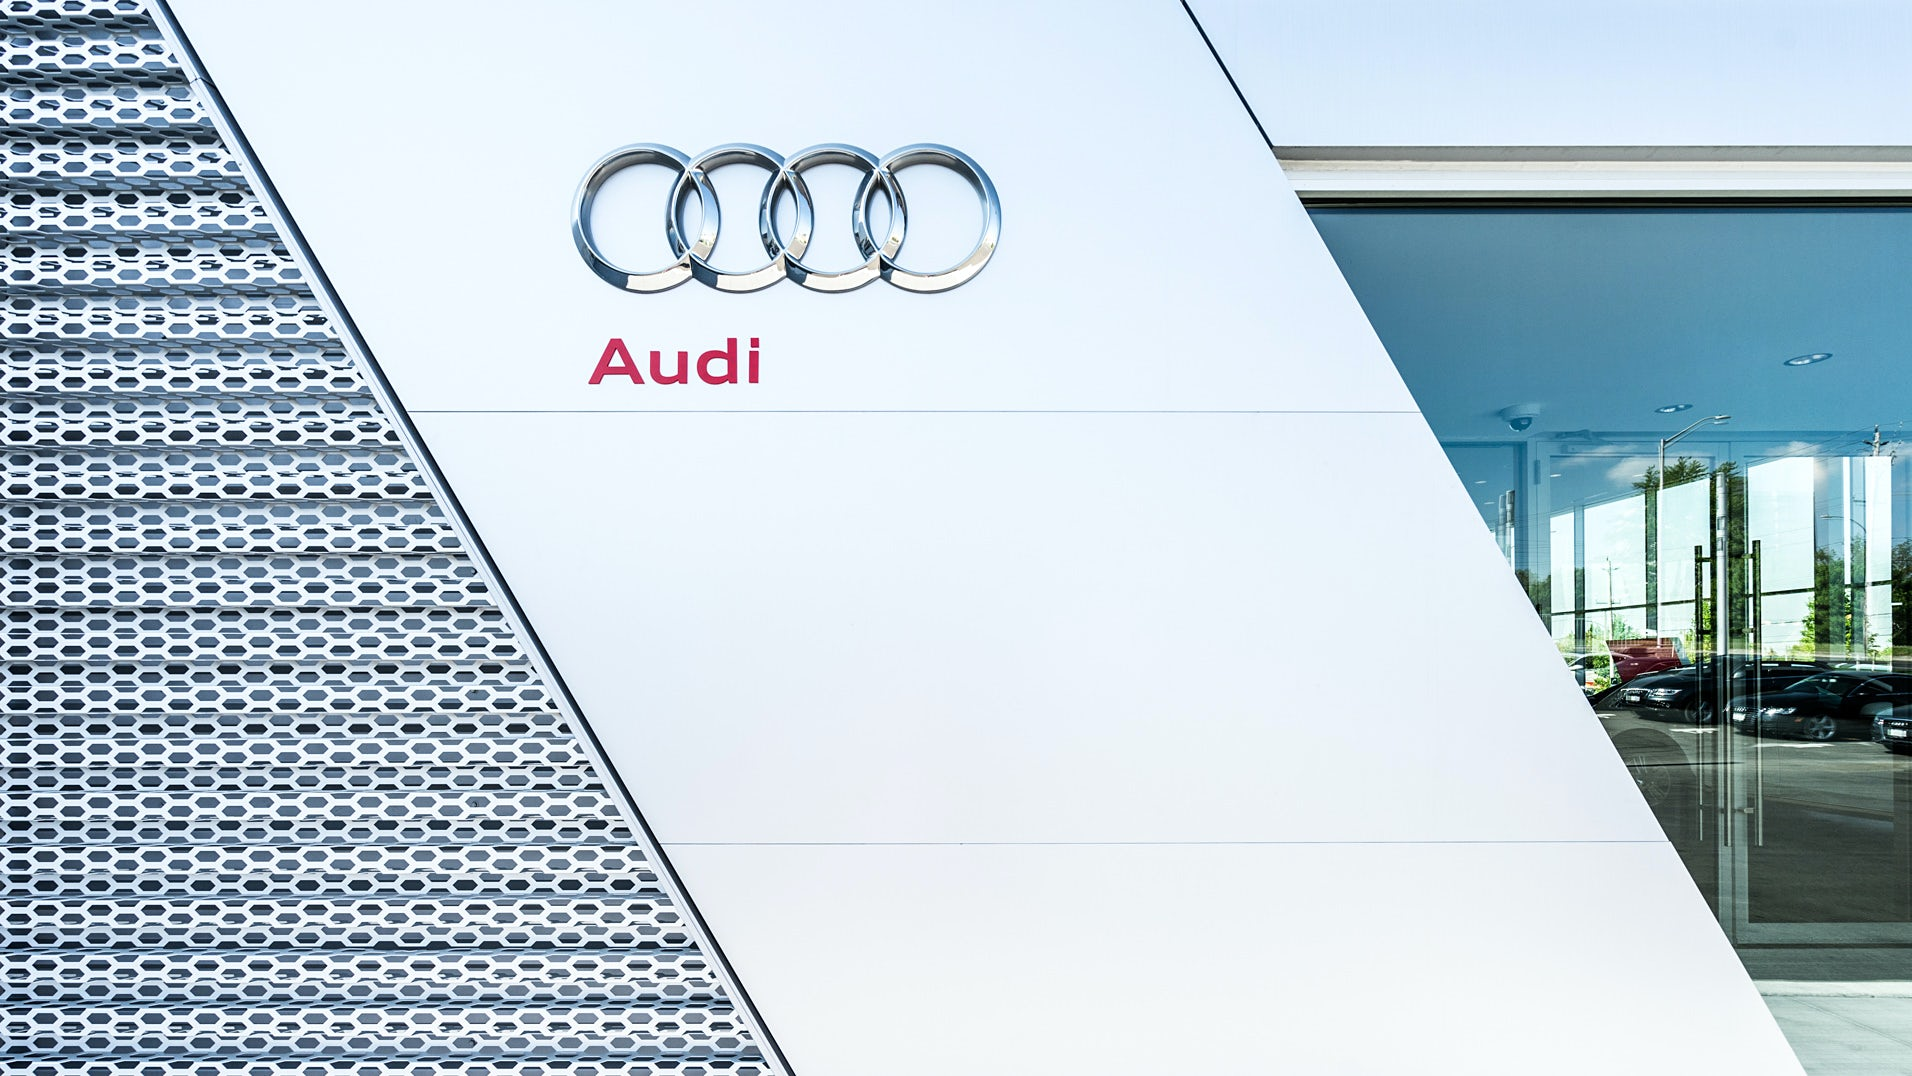 Detail images of the exterior architecture of the Audi Dealership in London by atrr